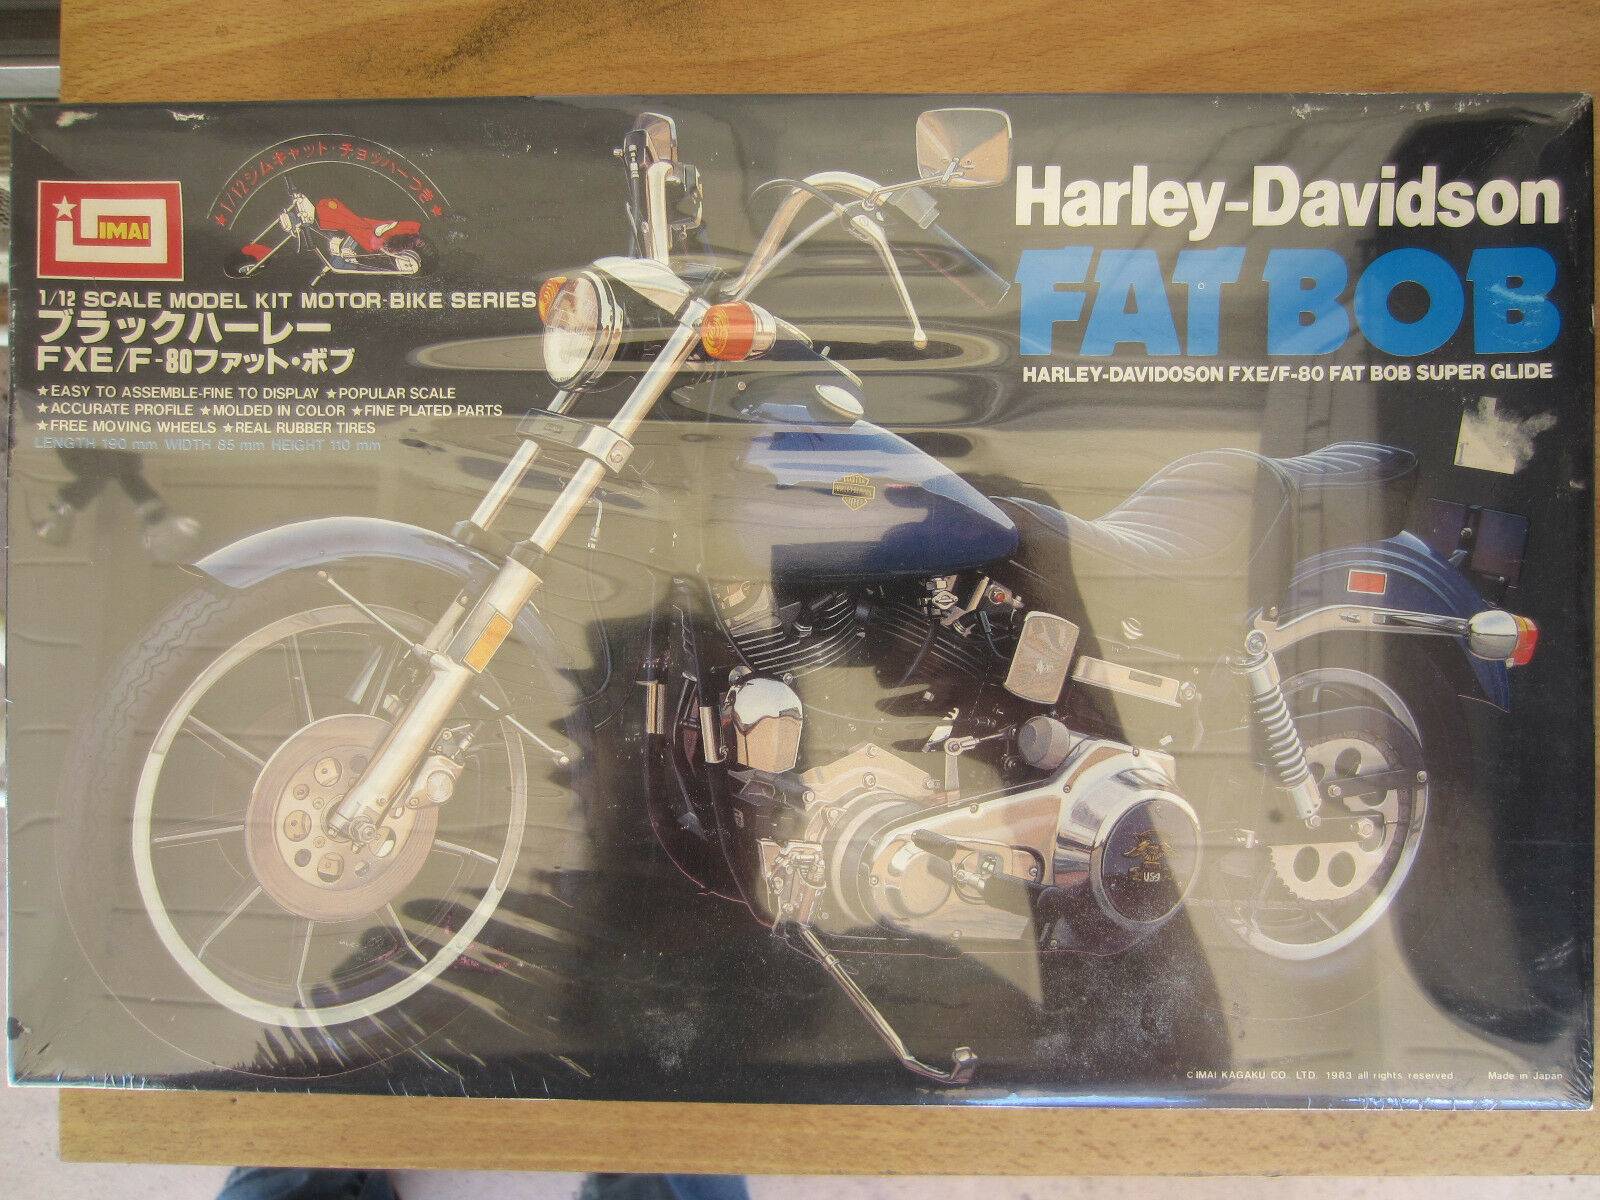 IMAI Vintage 1 12  Harley-Davidson Fat Bob FXE F-80 NEW SEALED Motor Bike Series